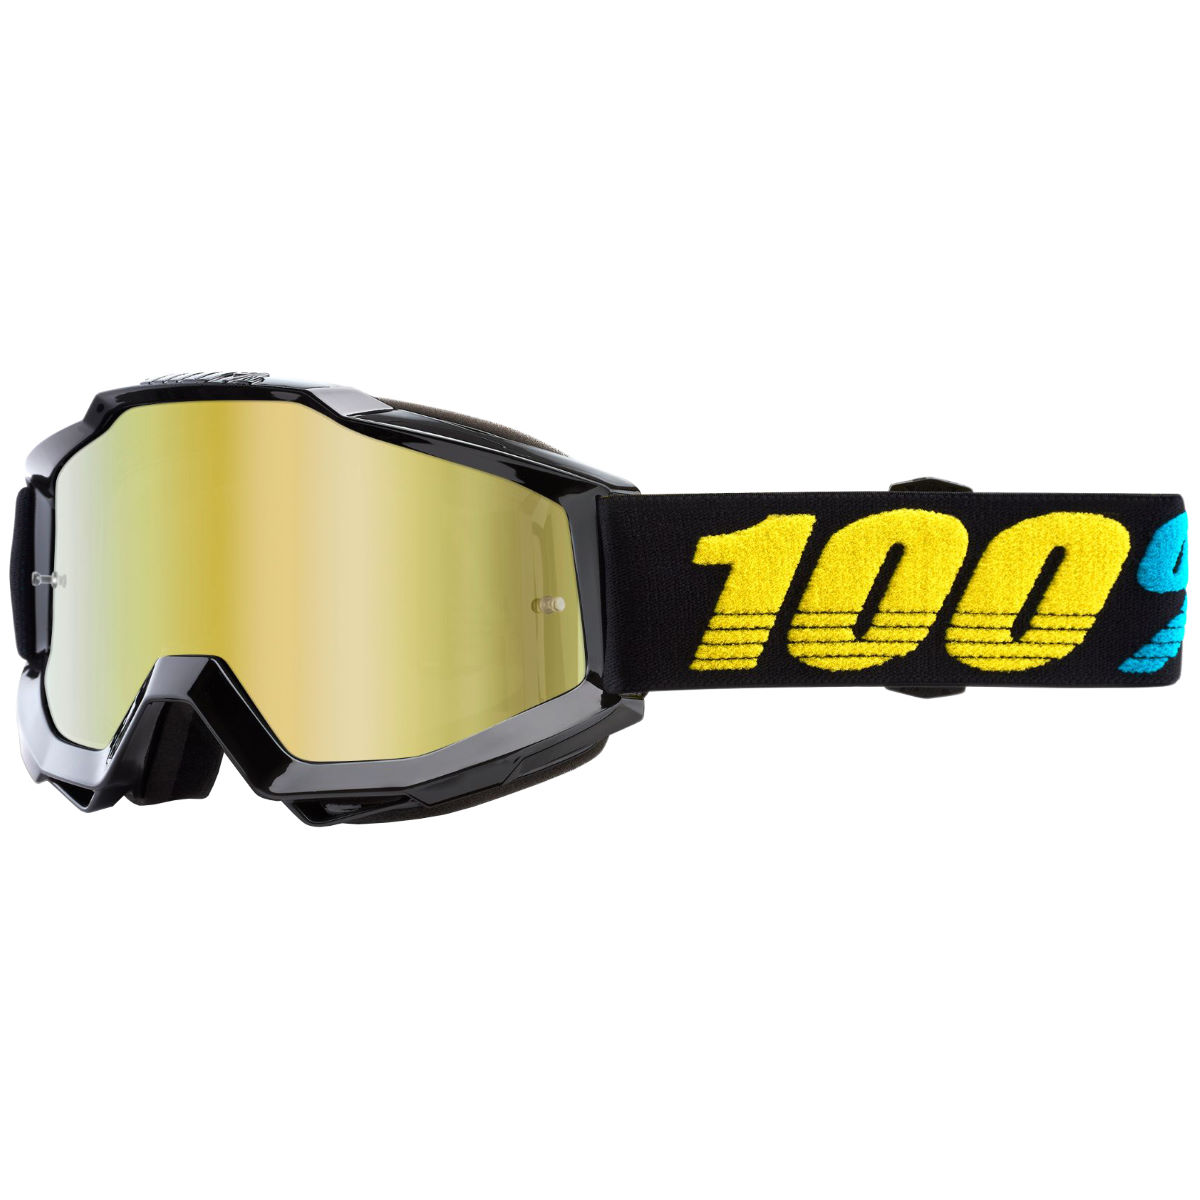 100% Accuri Virgo Mirror Gold Lens Goggles - One Size